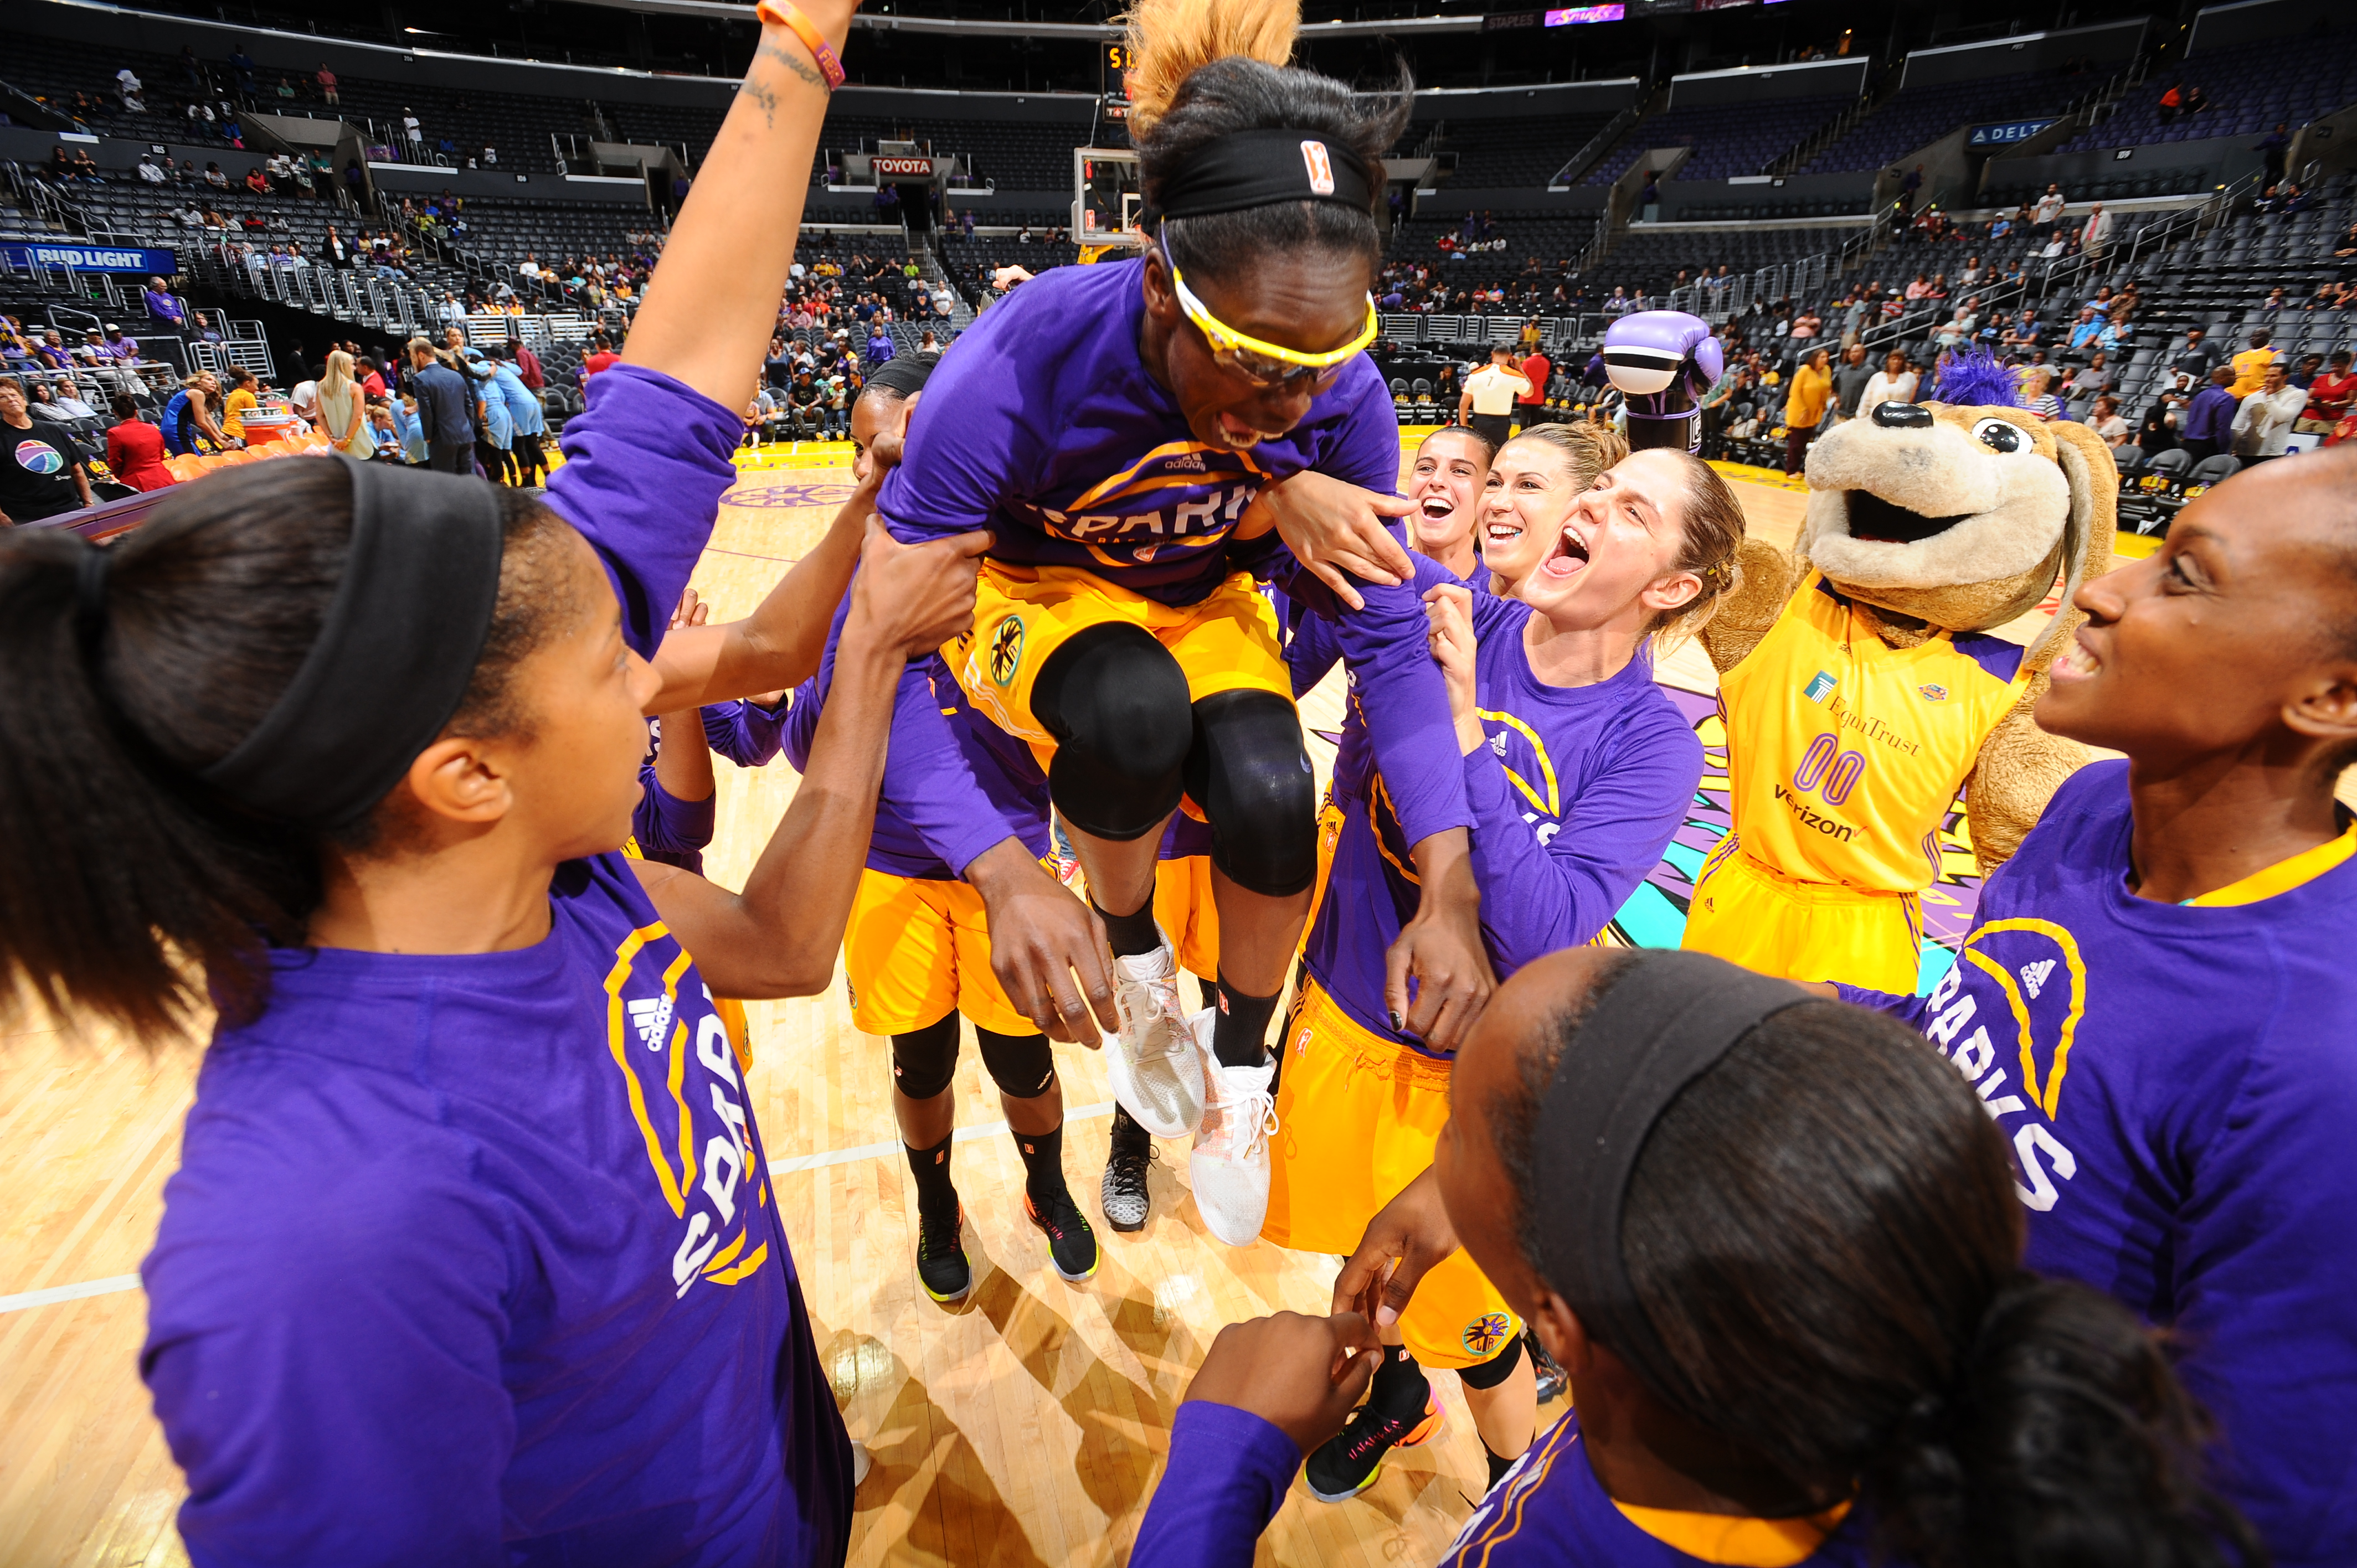 LA Sparks flying high, win Game 2 of WNBA seminfinals